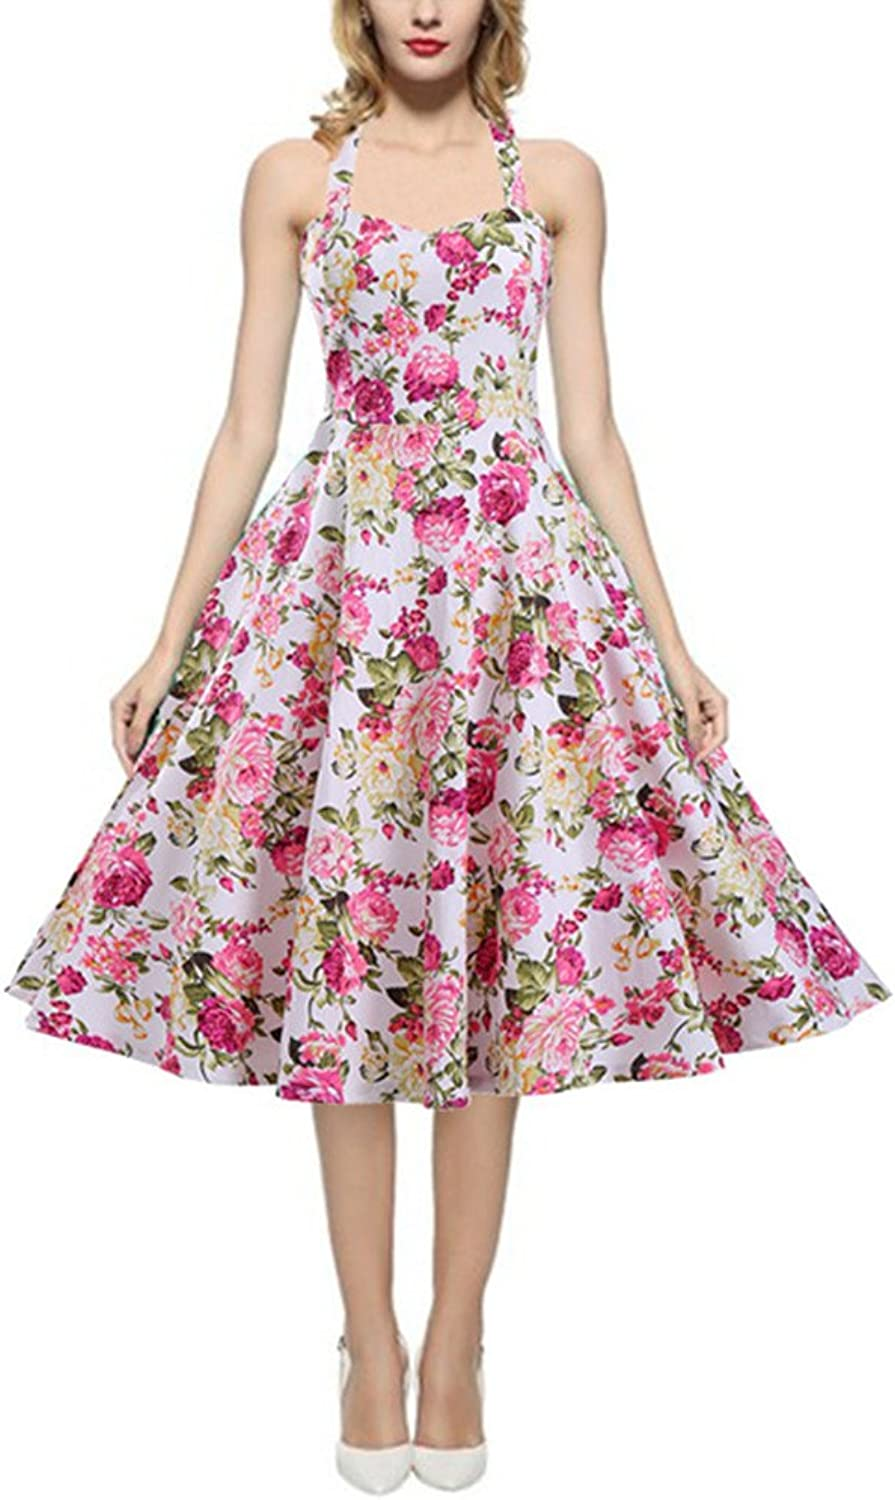 Women's 1950s Floral Print Vintage Tea Rockabilly Party Dress